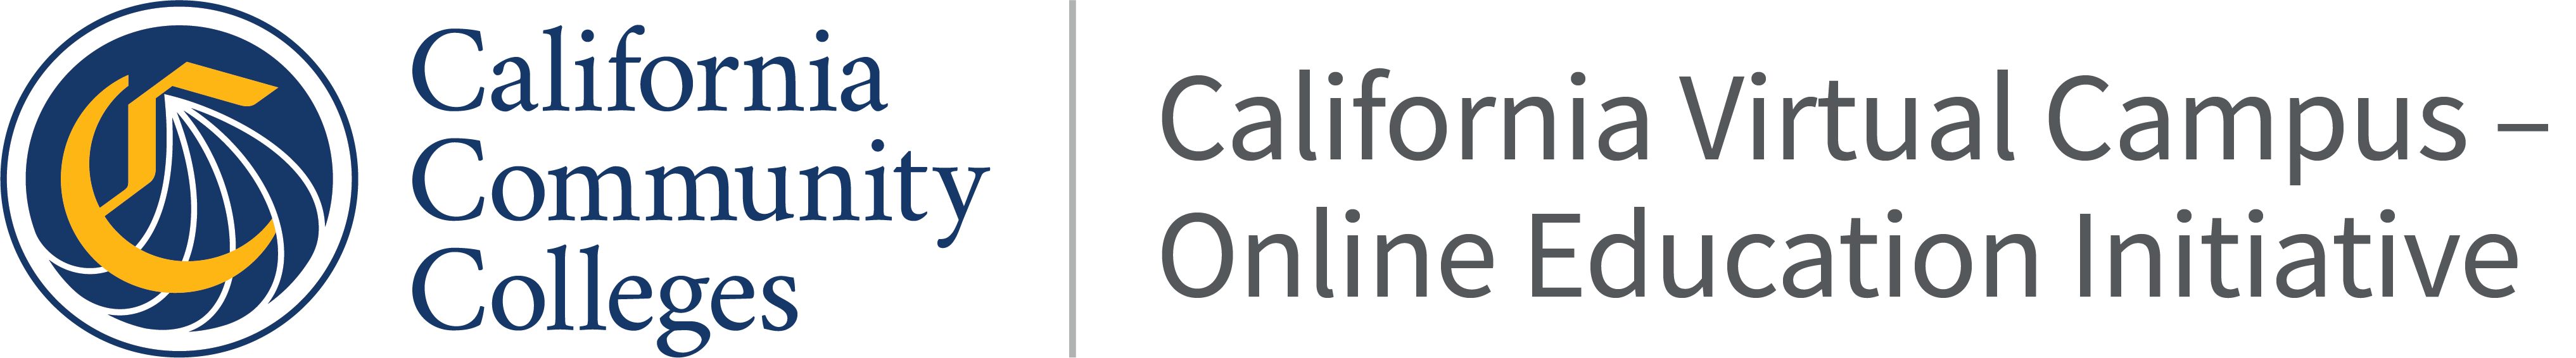 California Community Colleges - California Virtual Campus - Online Education Initiative